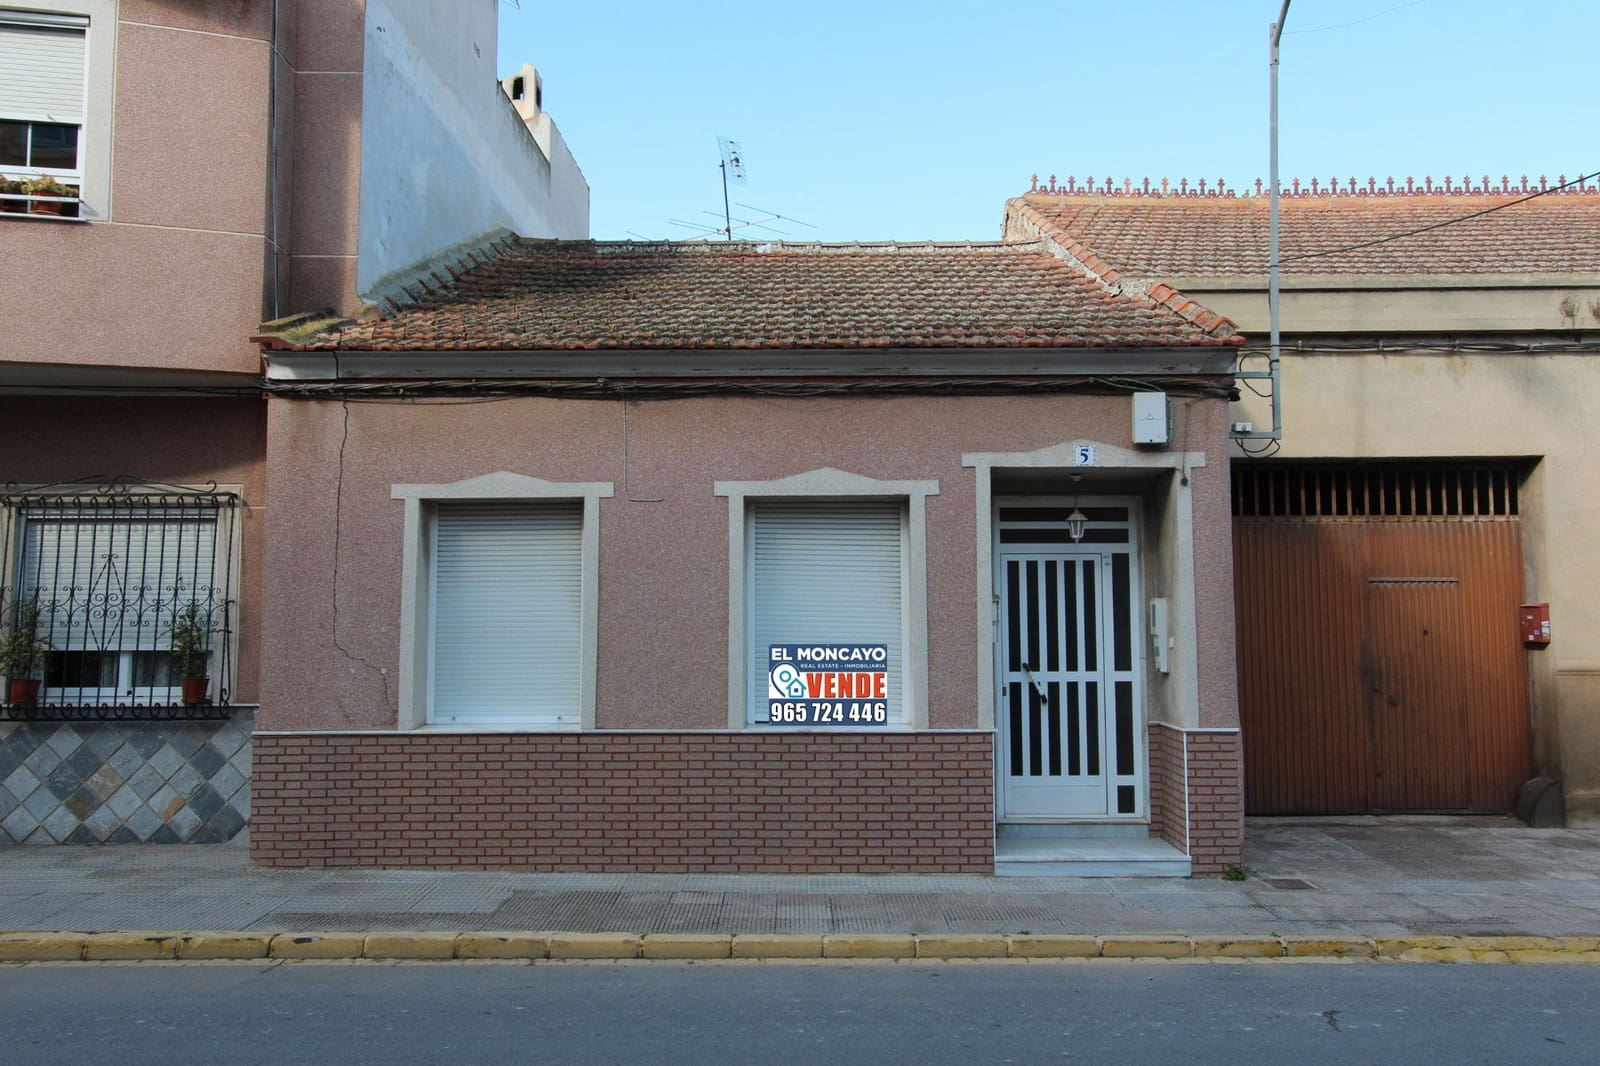 4 bedroom Townhouse for sale in Rojales - € 130,000 (Ref: 5985493)